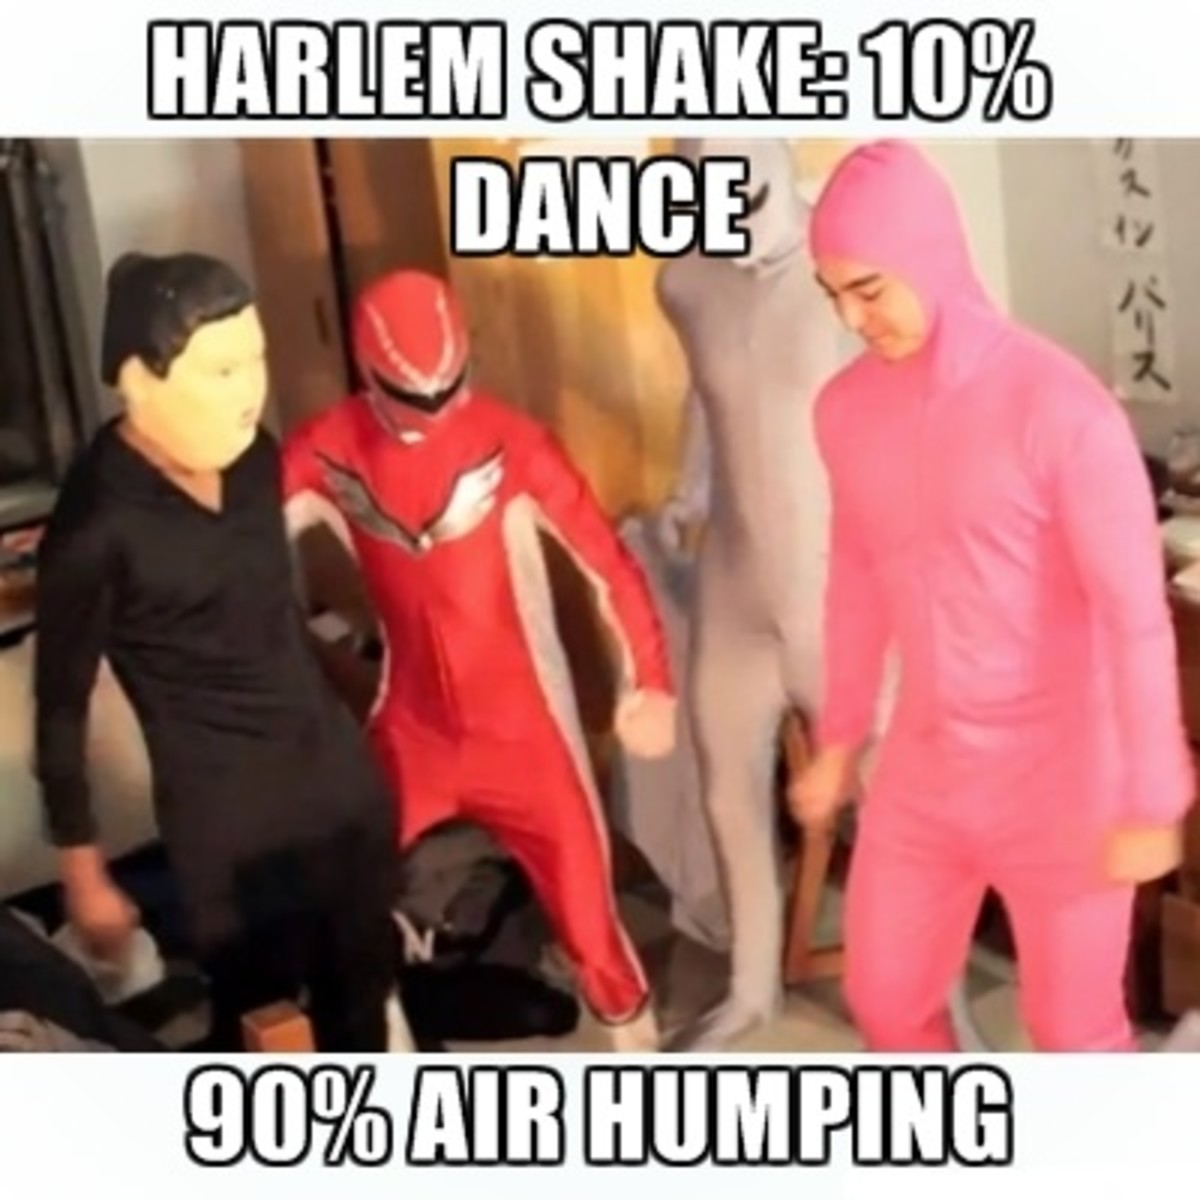 the-harlem-shake-or-the-holy-spirit